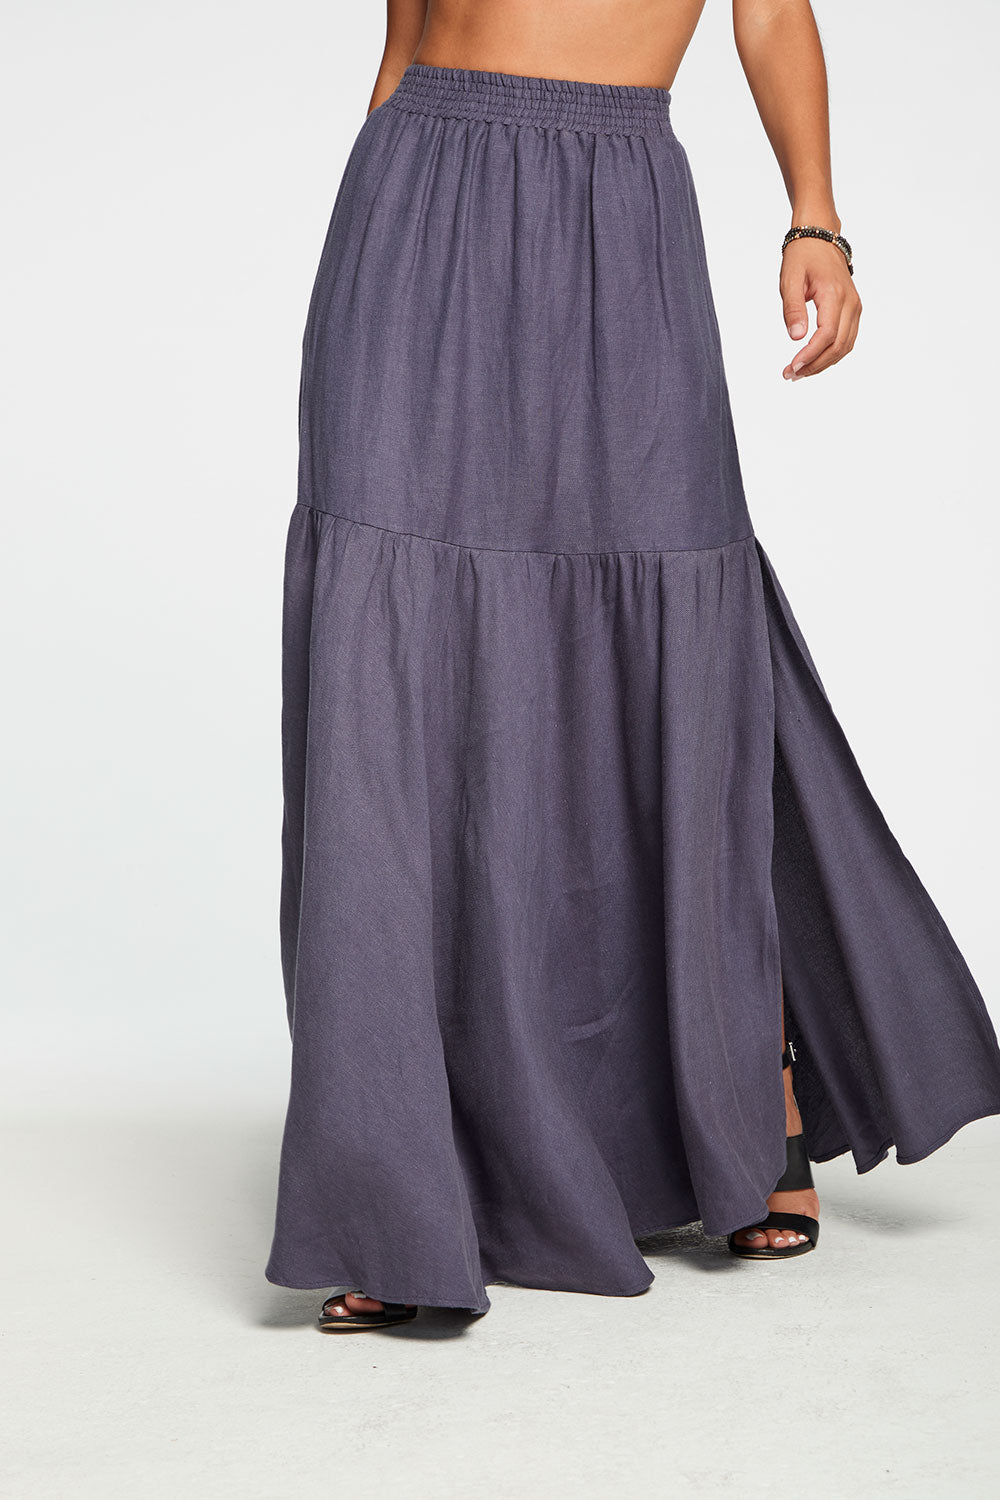 Beachy Linen Tiered Side Slit Maxi Skirt in Newport Blue WOMENS chaserbrand4.myshopify.com